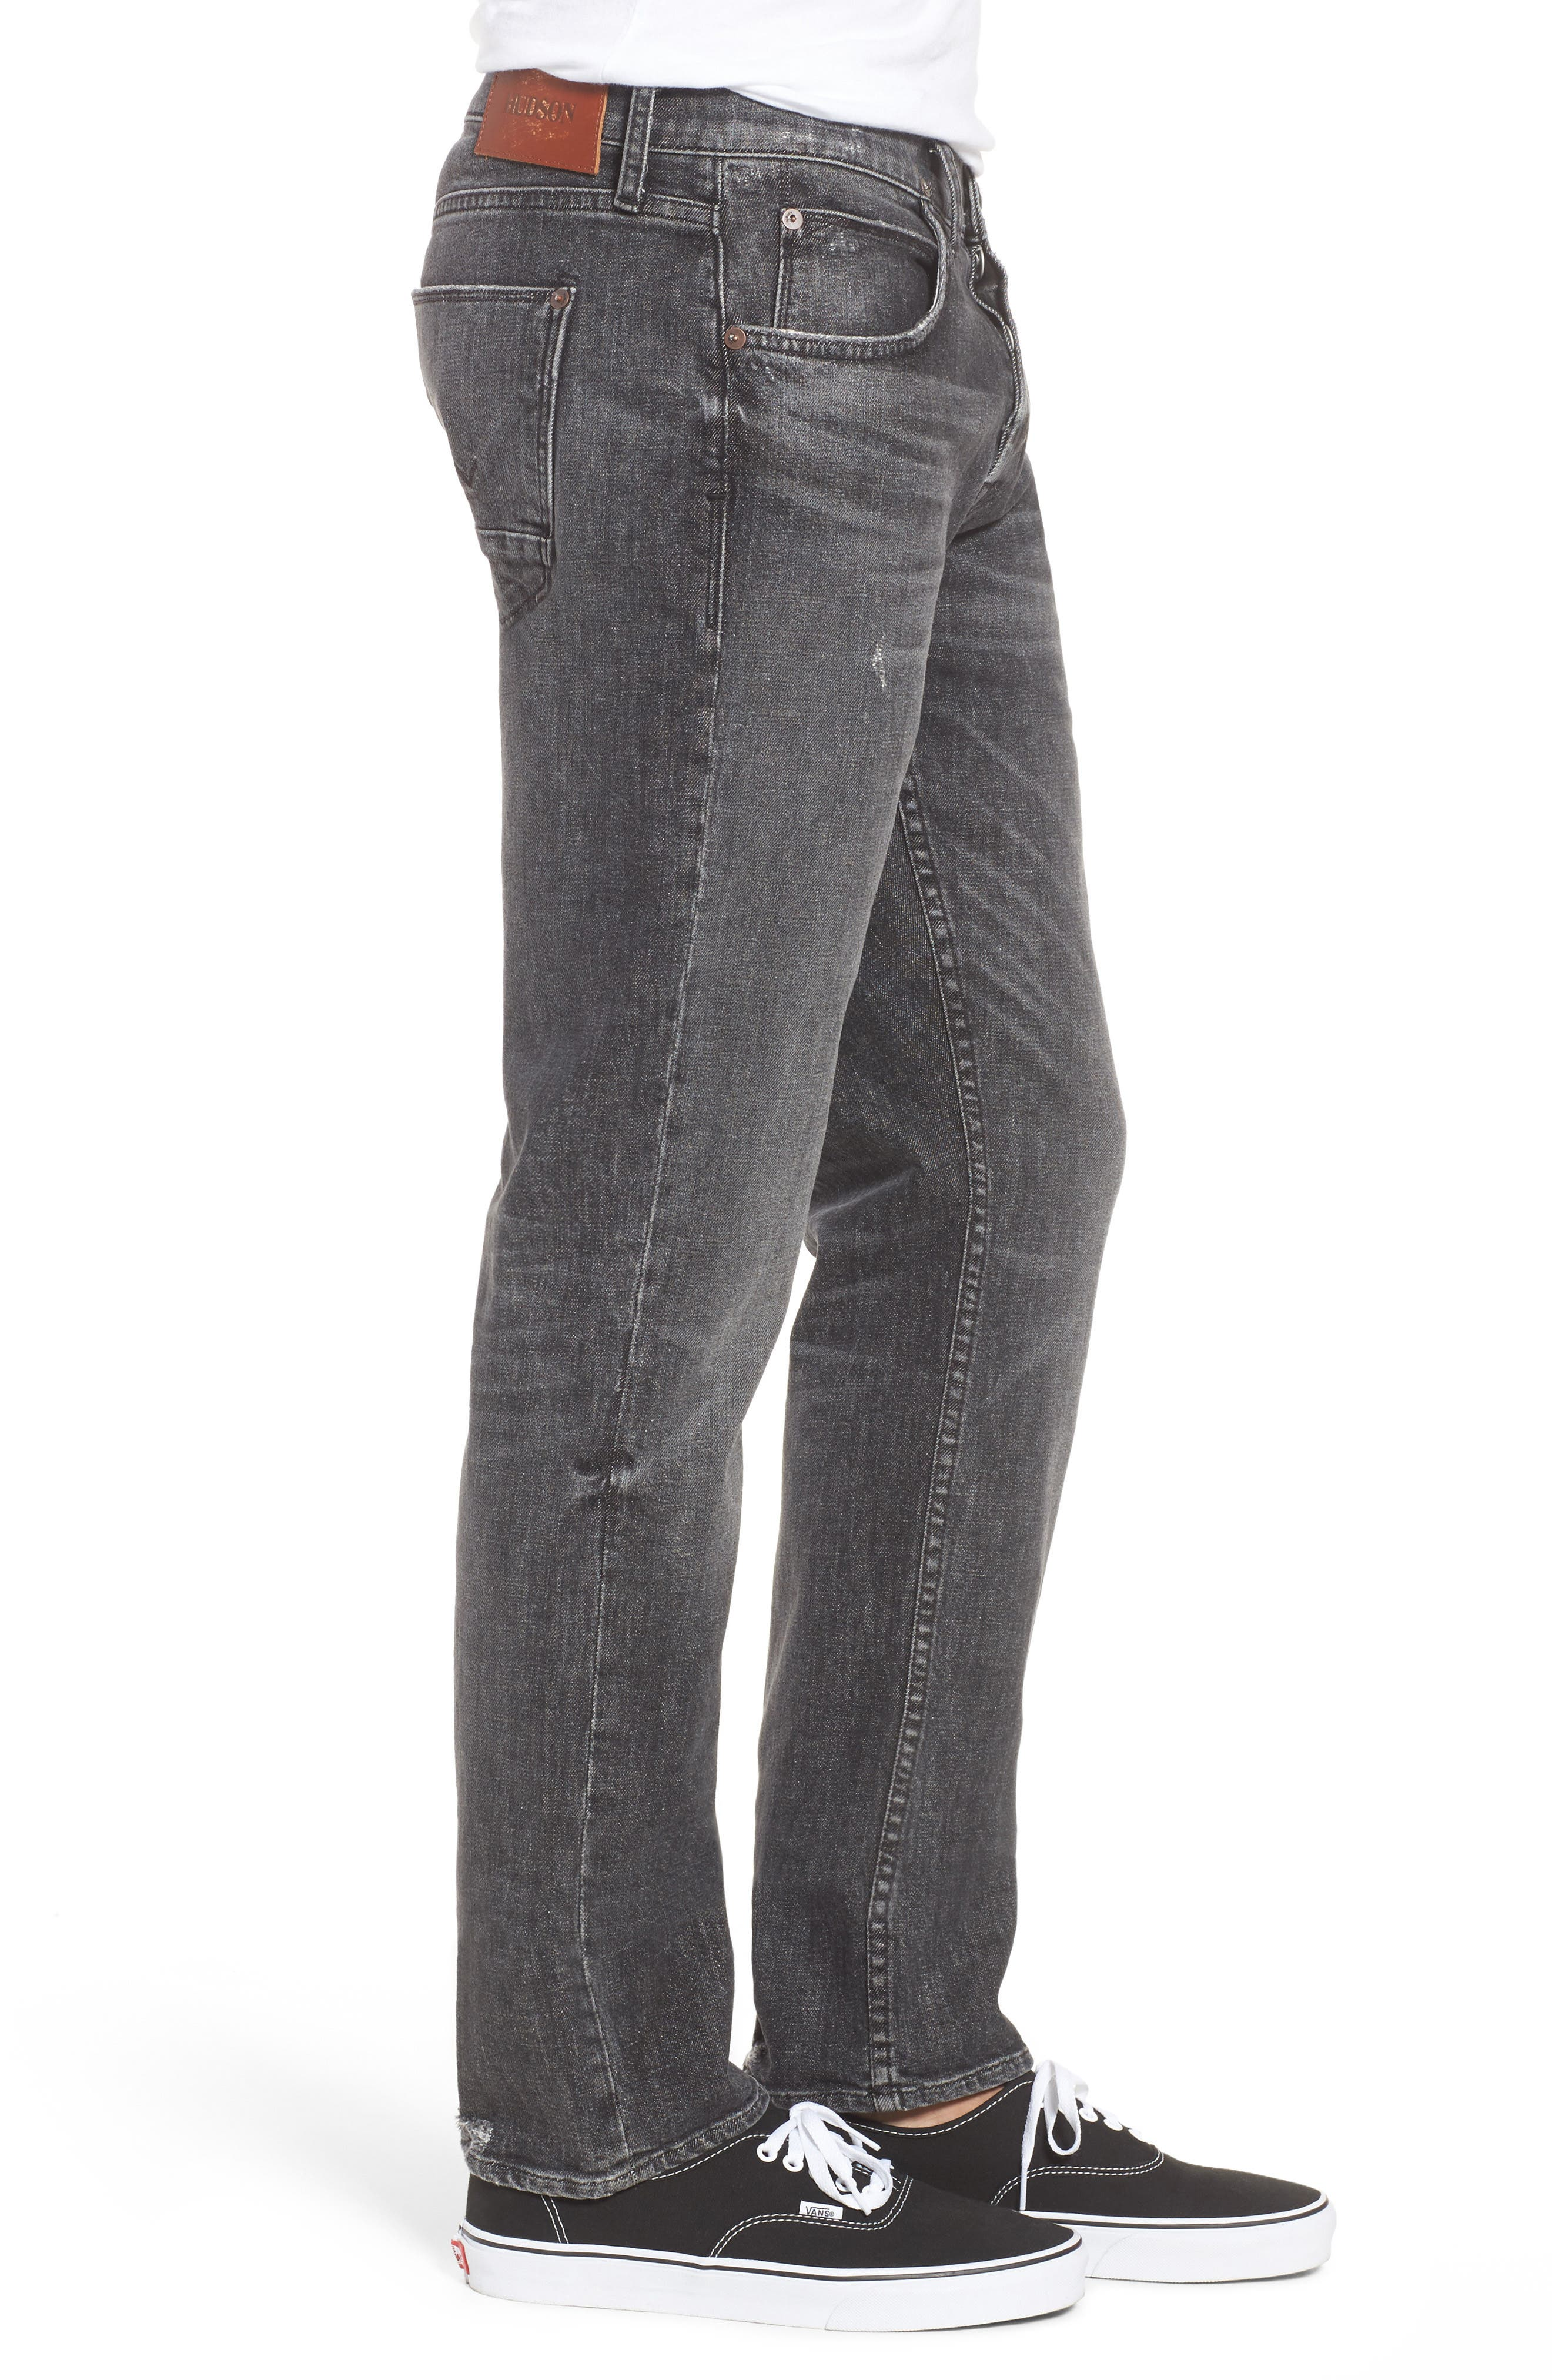 Blake Slim Fit Jeans,                             Alternate thumbnail 3, color,                             400